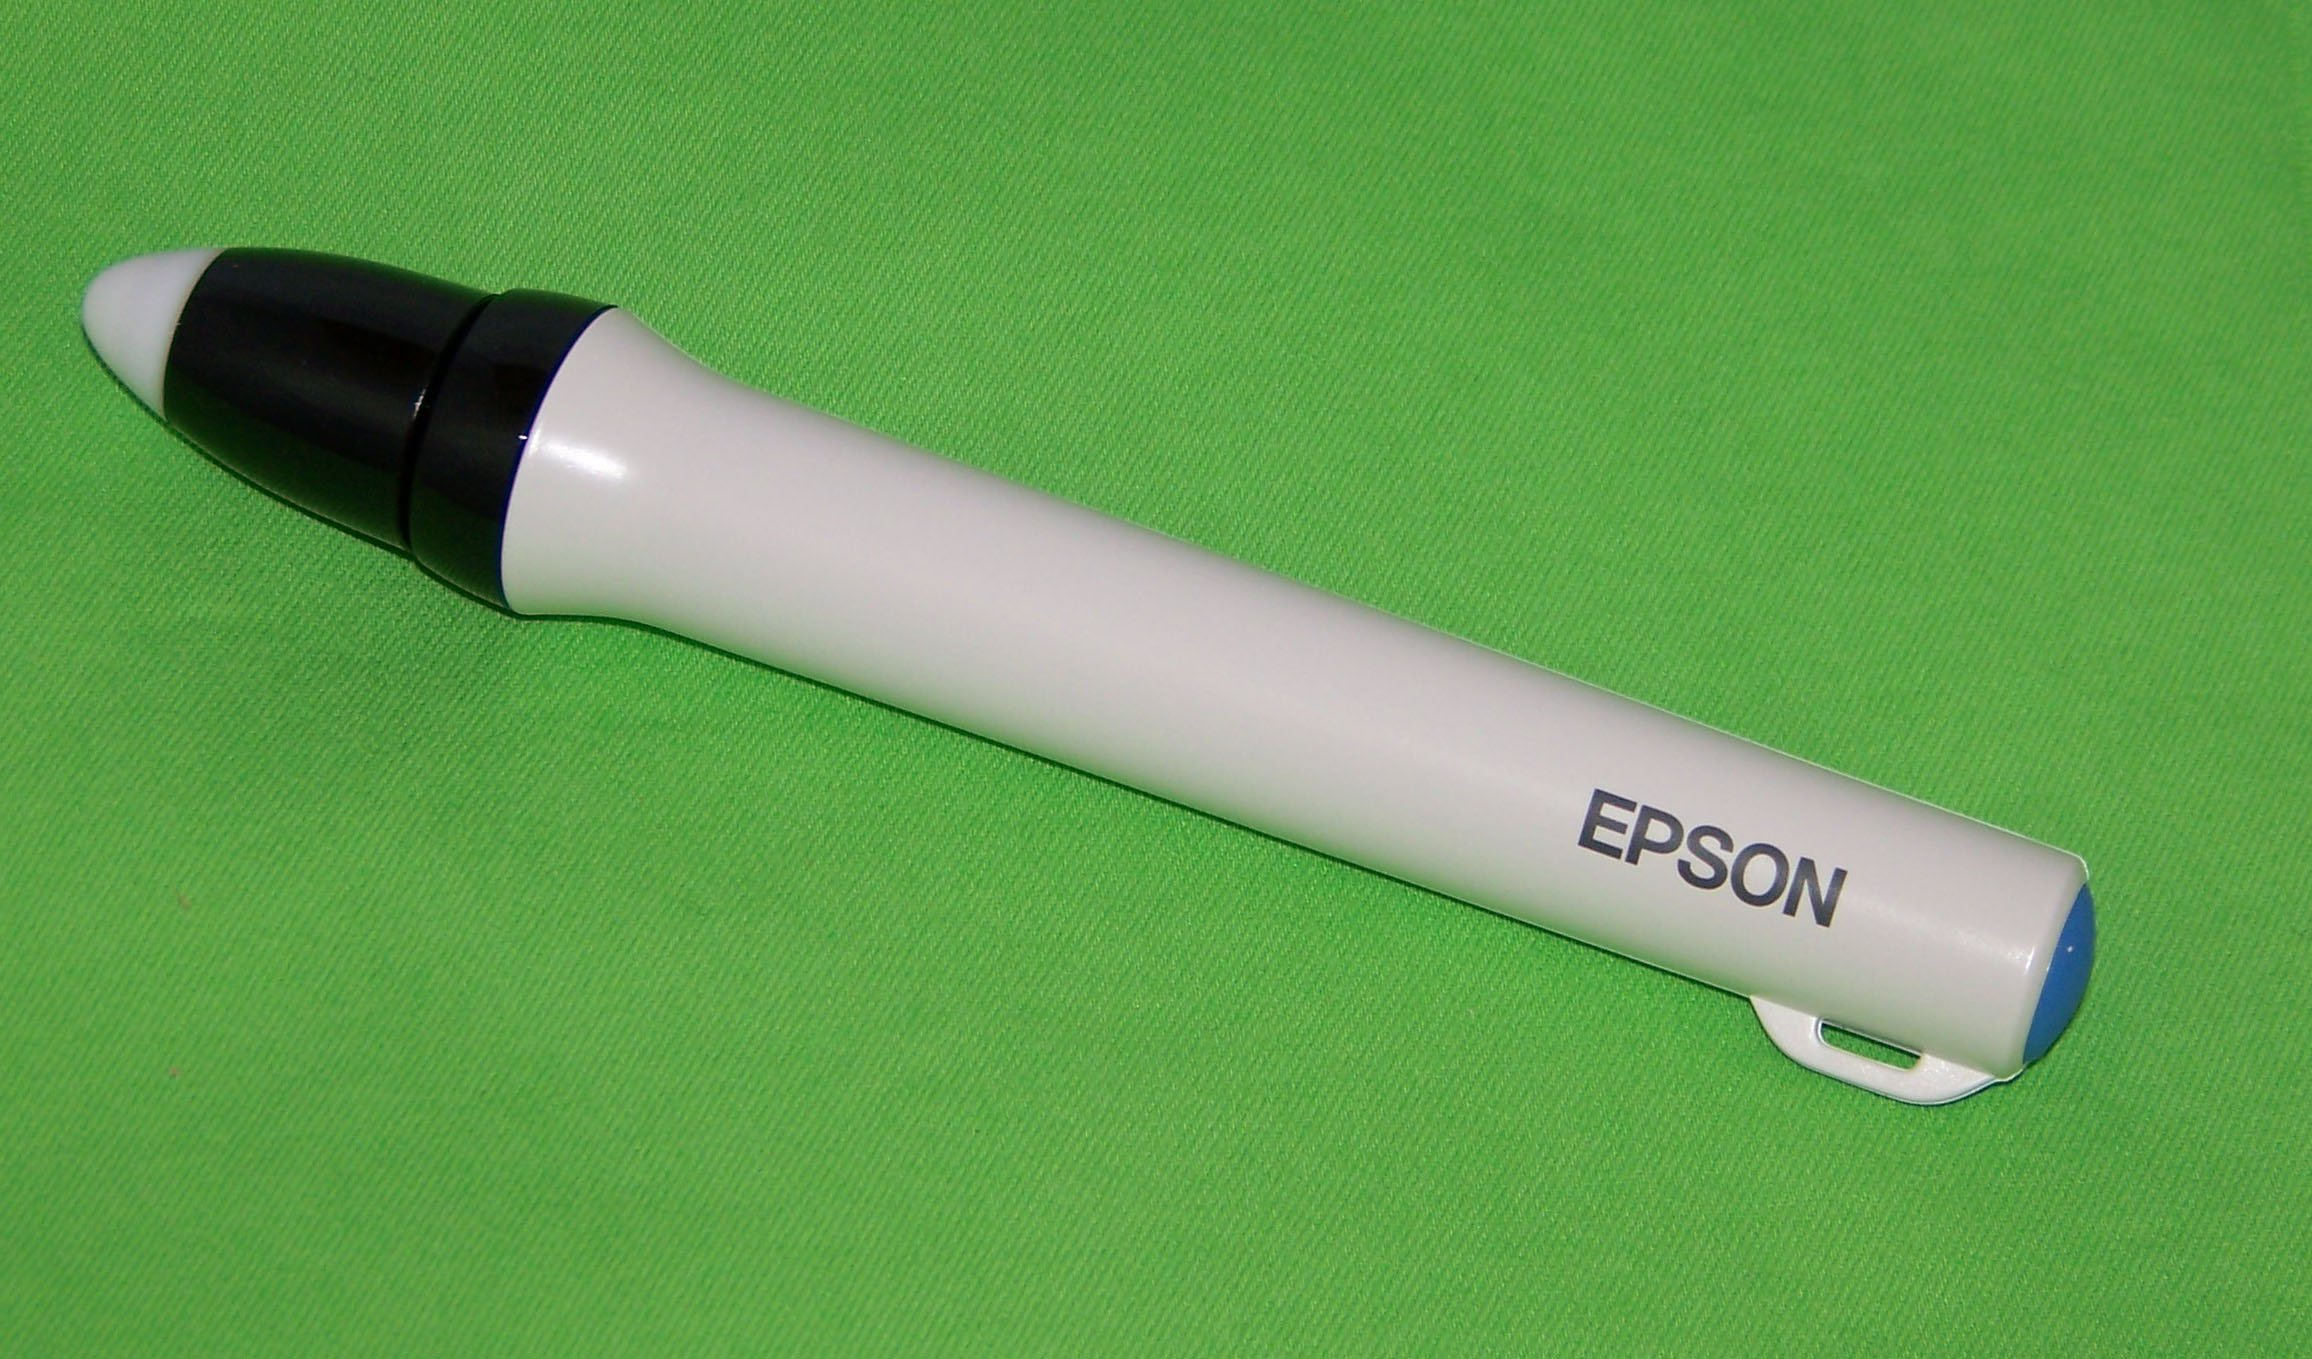 OEM Epson Projector BLUE Interactive Pen For Epson Home Cinema LS100, PowerLite 700U, PowerLite 700Ui by Epson